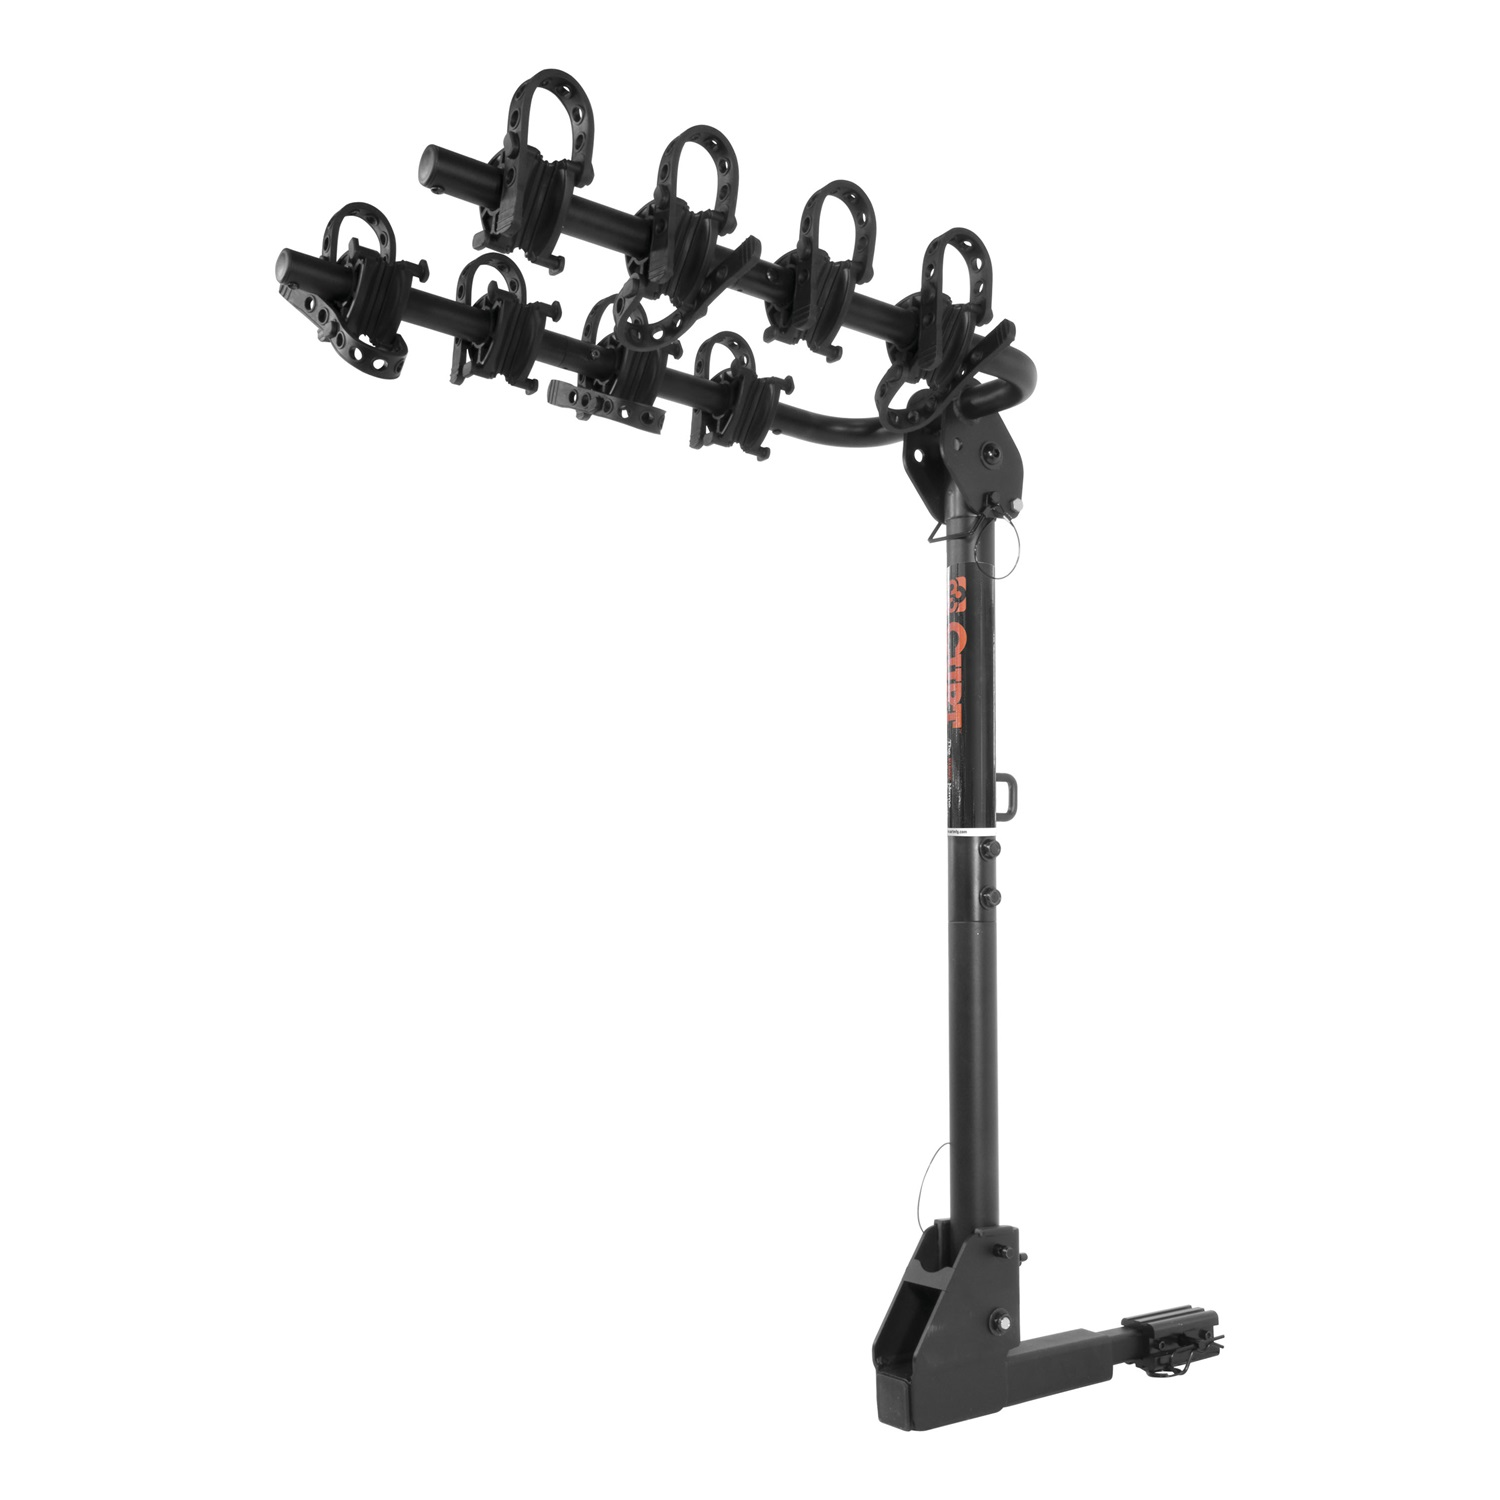 Curt Manufacturing Cur18030 Extendable Hitch Mounted Bike Rack by CURT Manufacturing